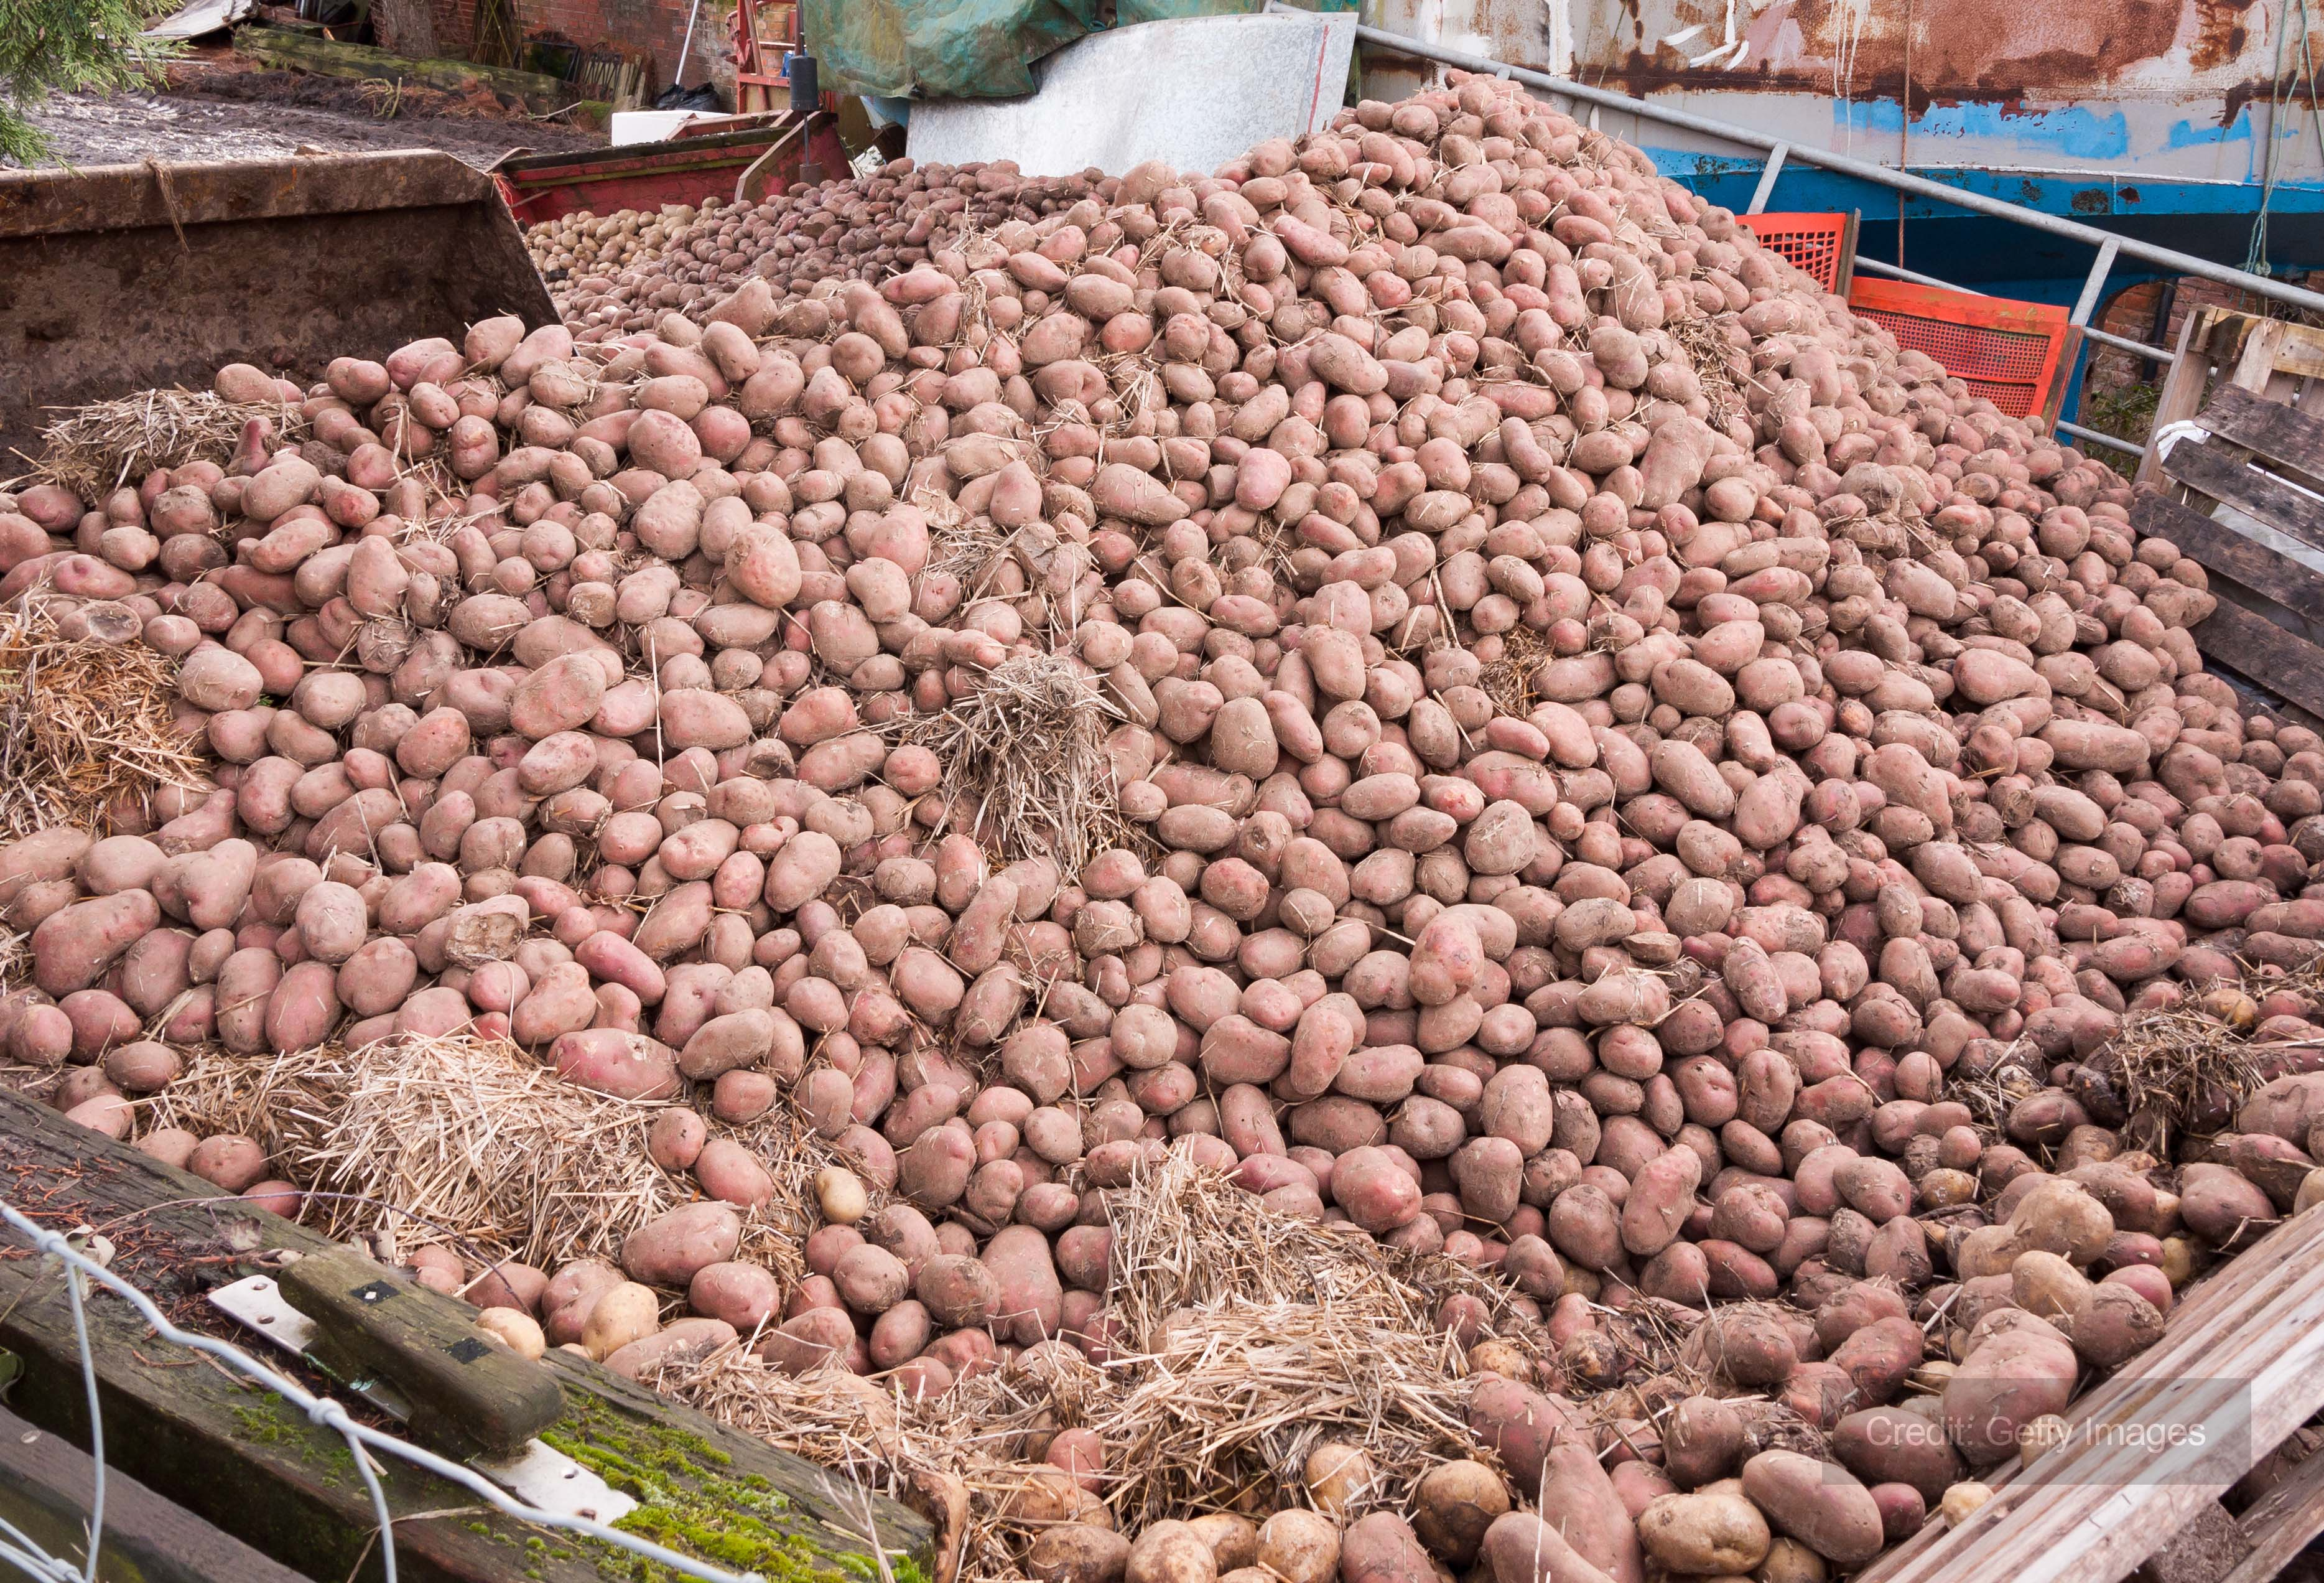 Andrews Dehumidification keep freshly harvested potatoes unspoiled